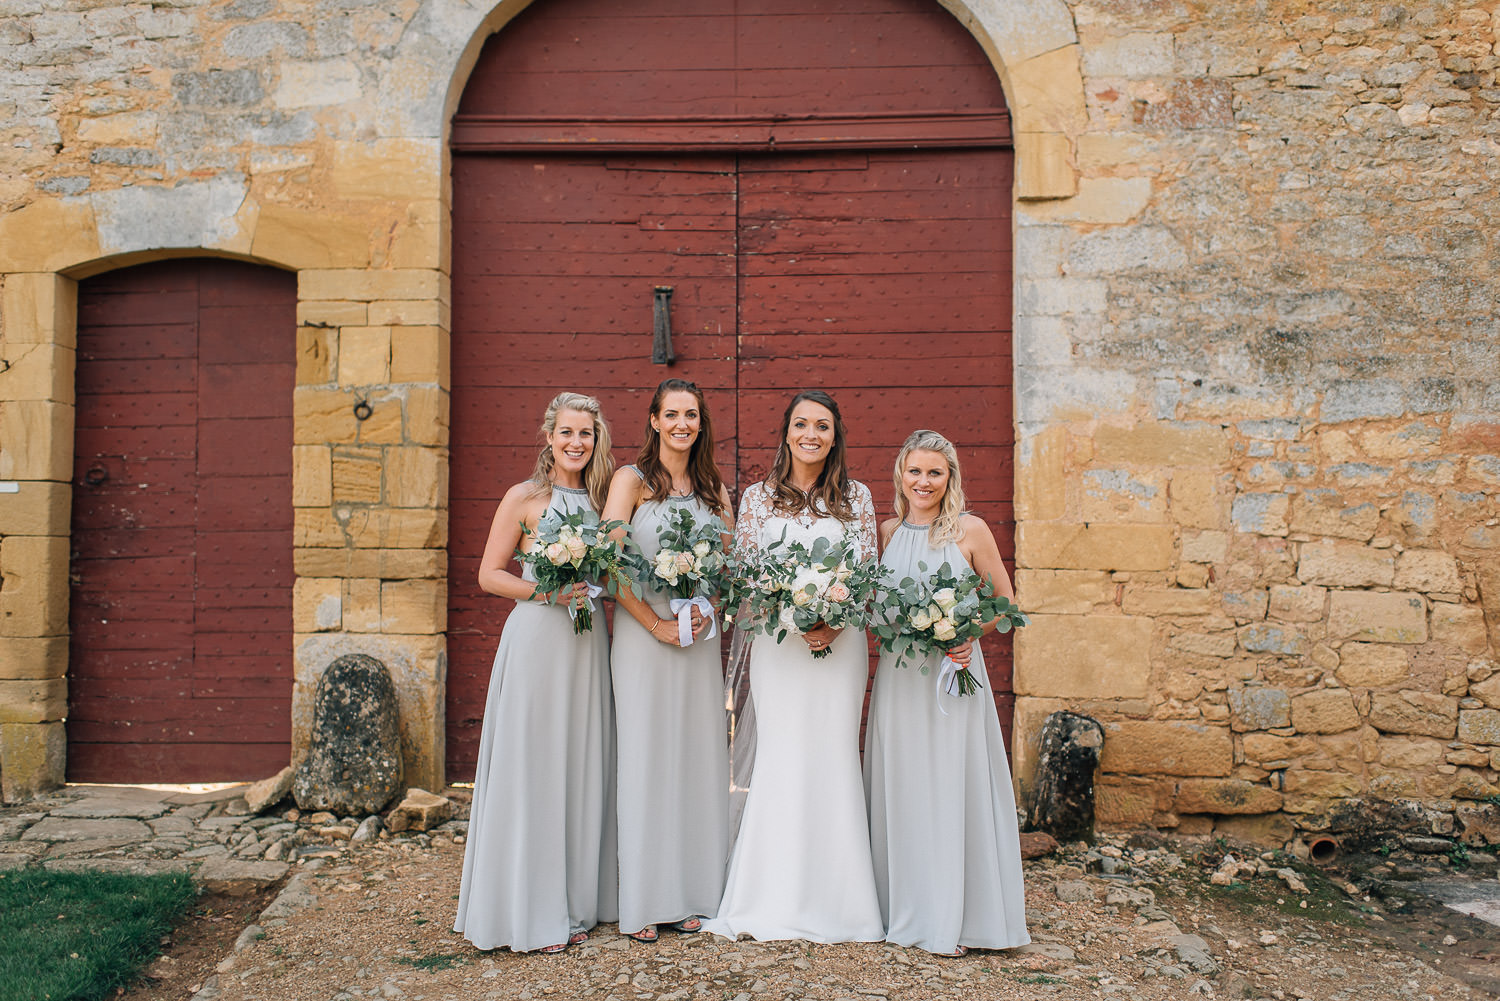 Bridesmaids with Rime Arodaky wedding dress in chateau de la bourlie wedding by destination wedding photographer the shannons photography